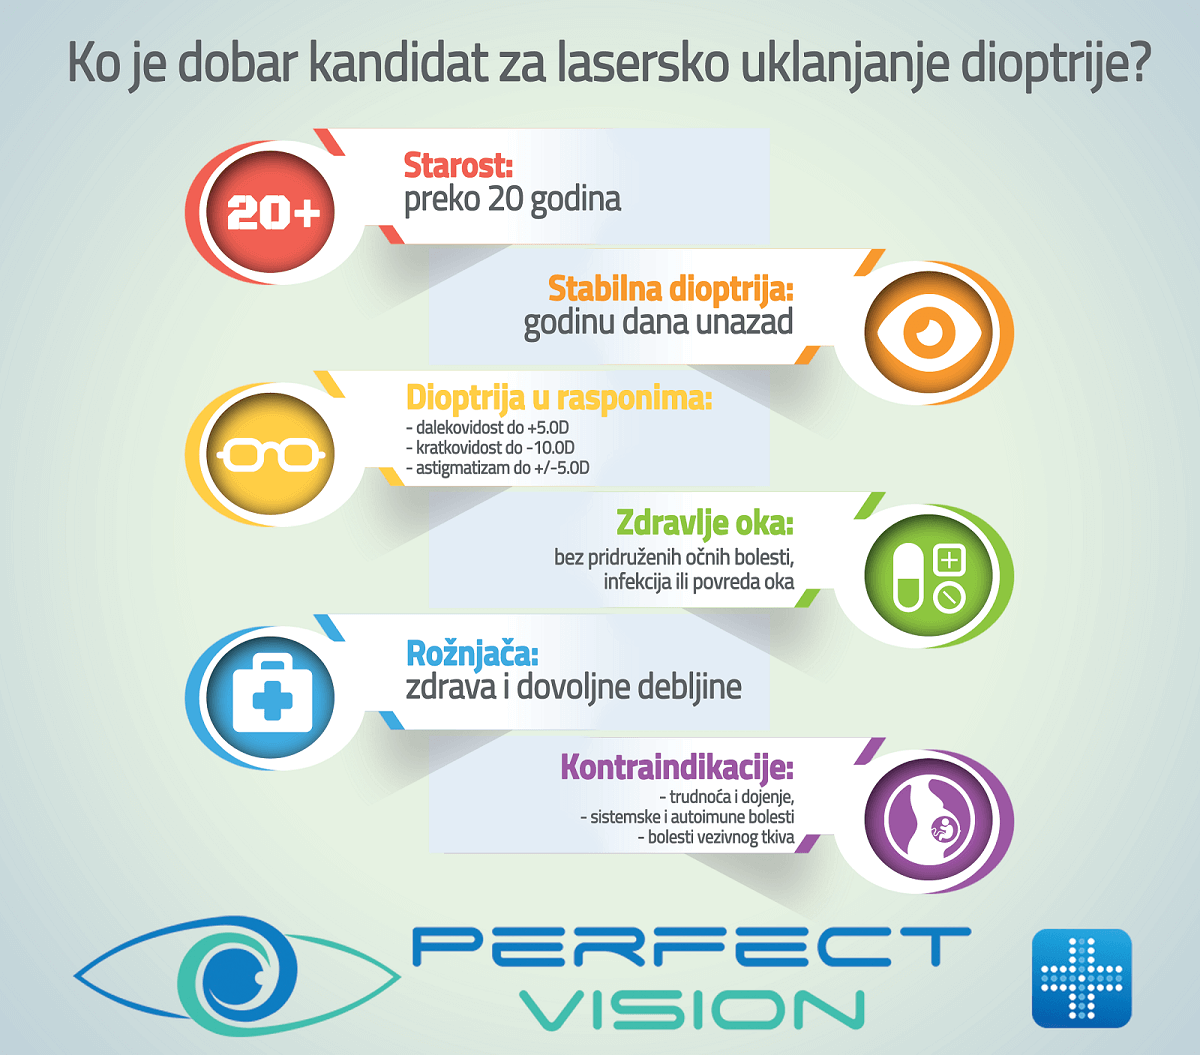 Ko je dobar kandidat za lasersko uklanjanje dioptrije